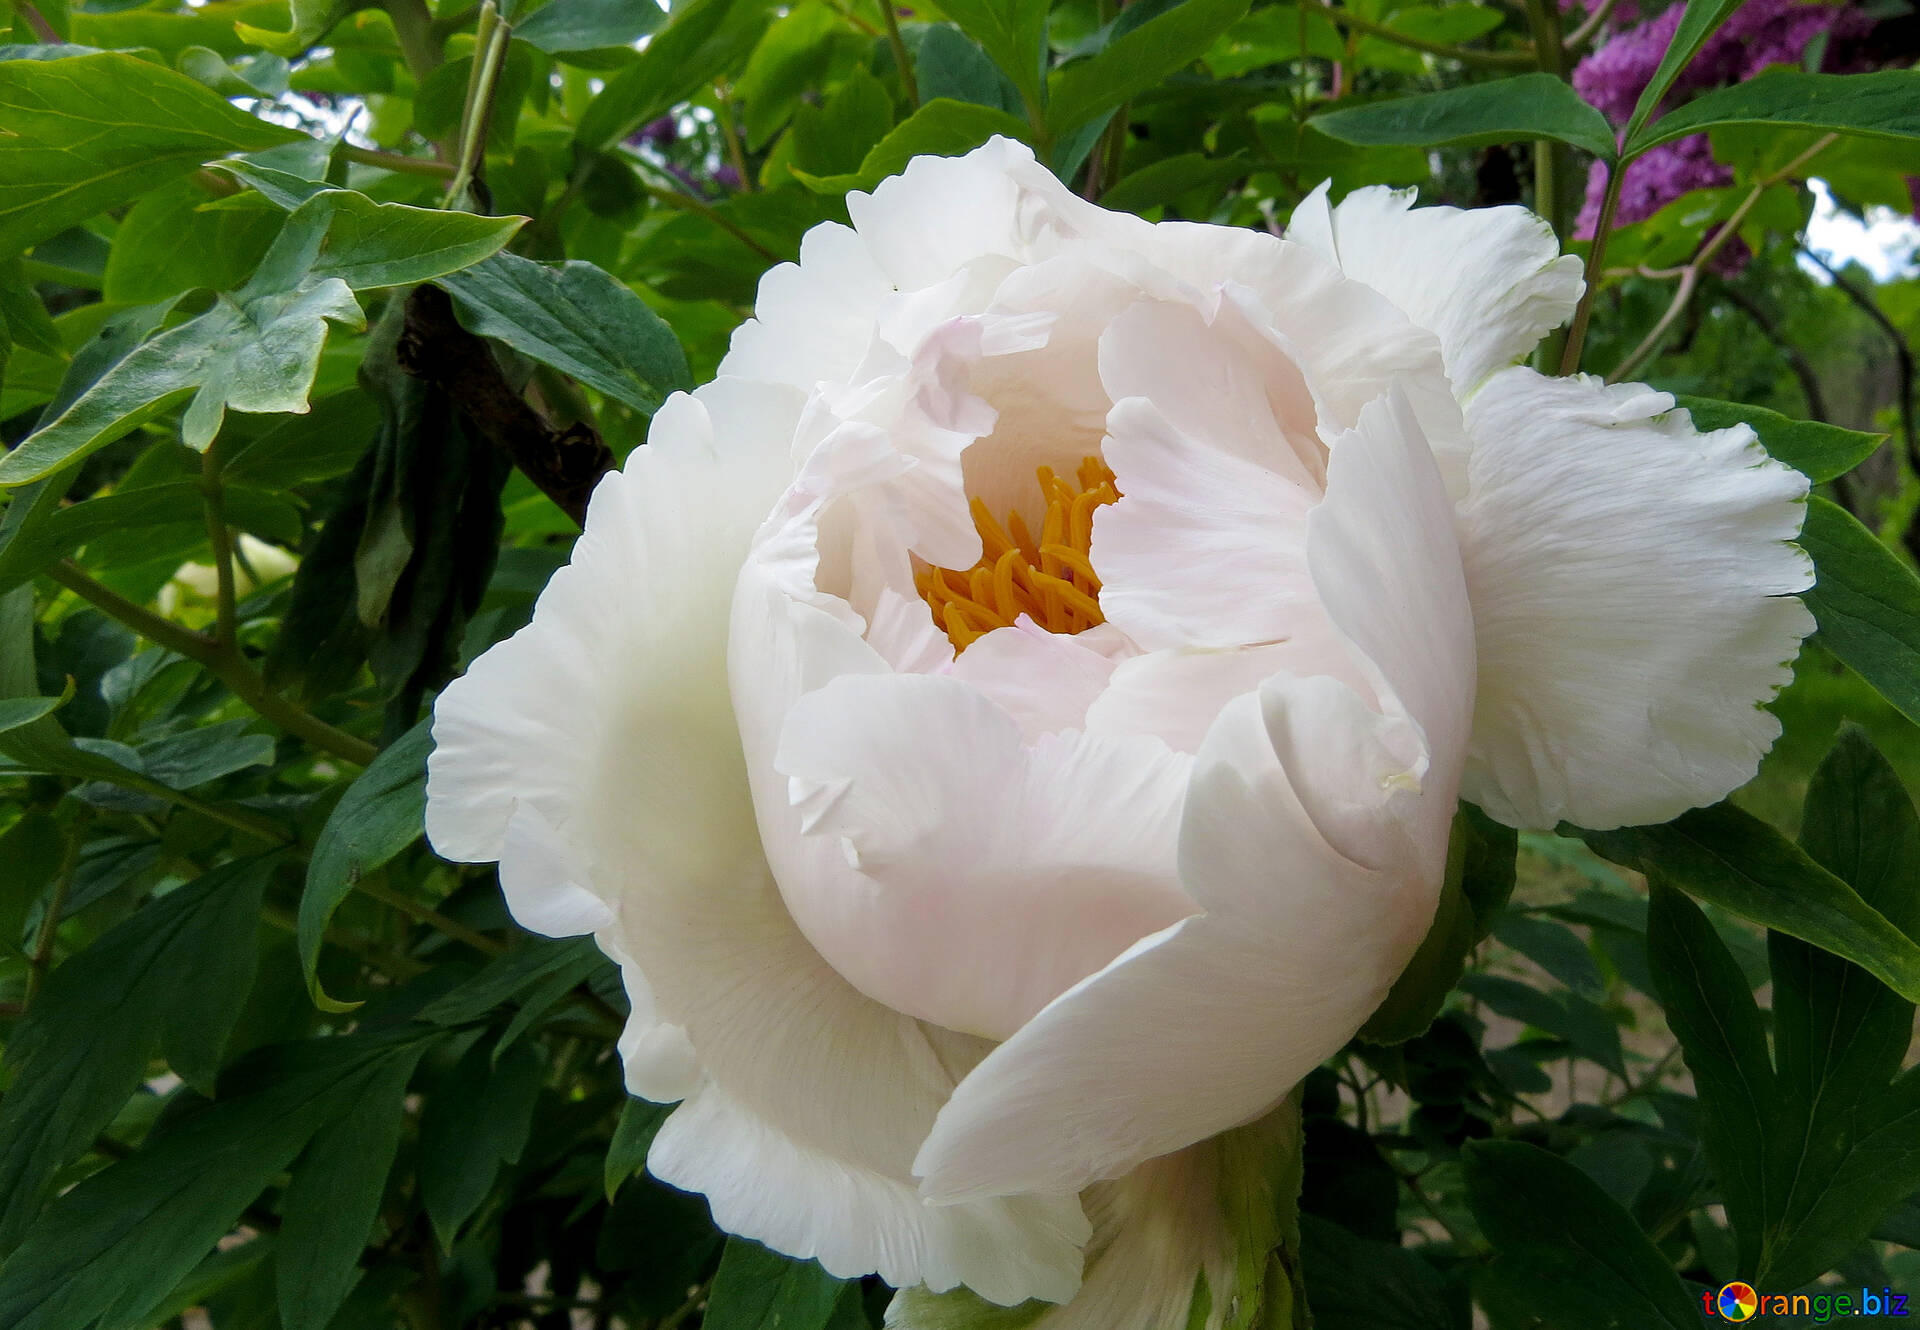 Flowers Peonies Tree Big White Flower Park 37337